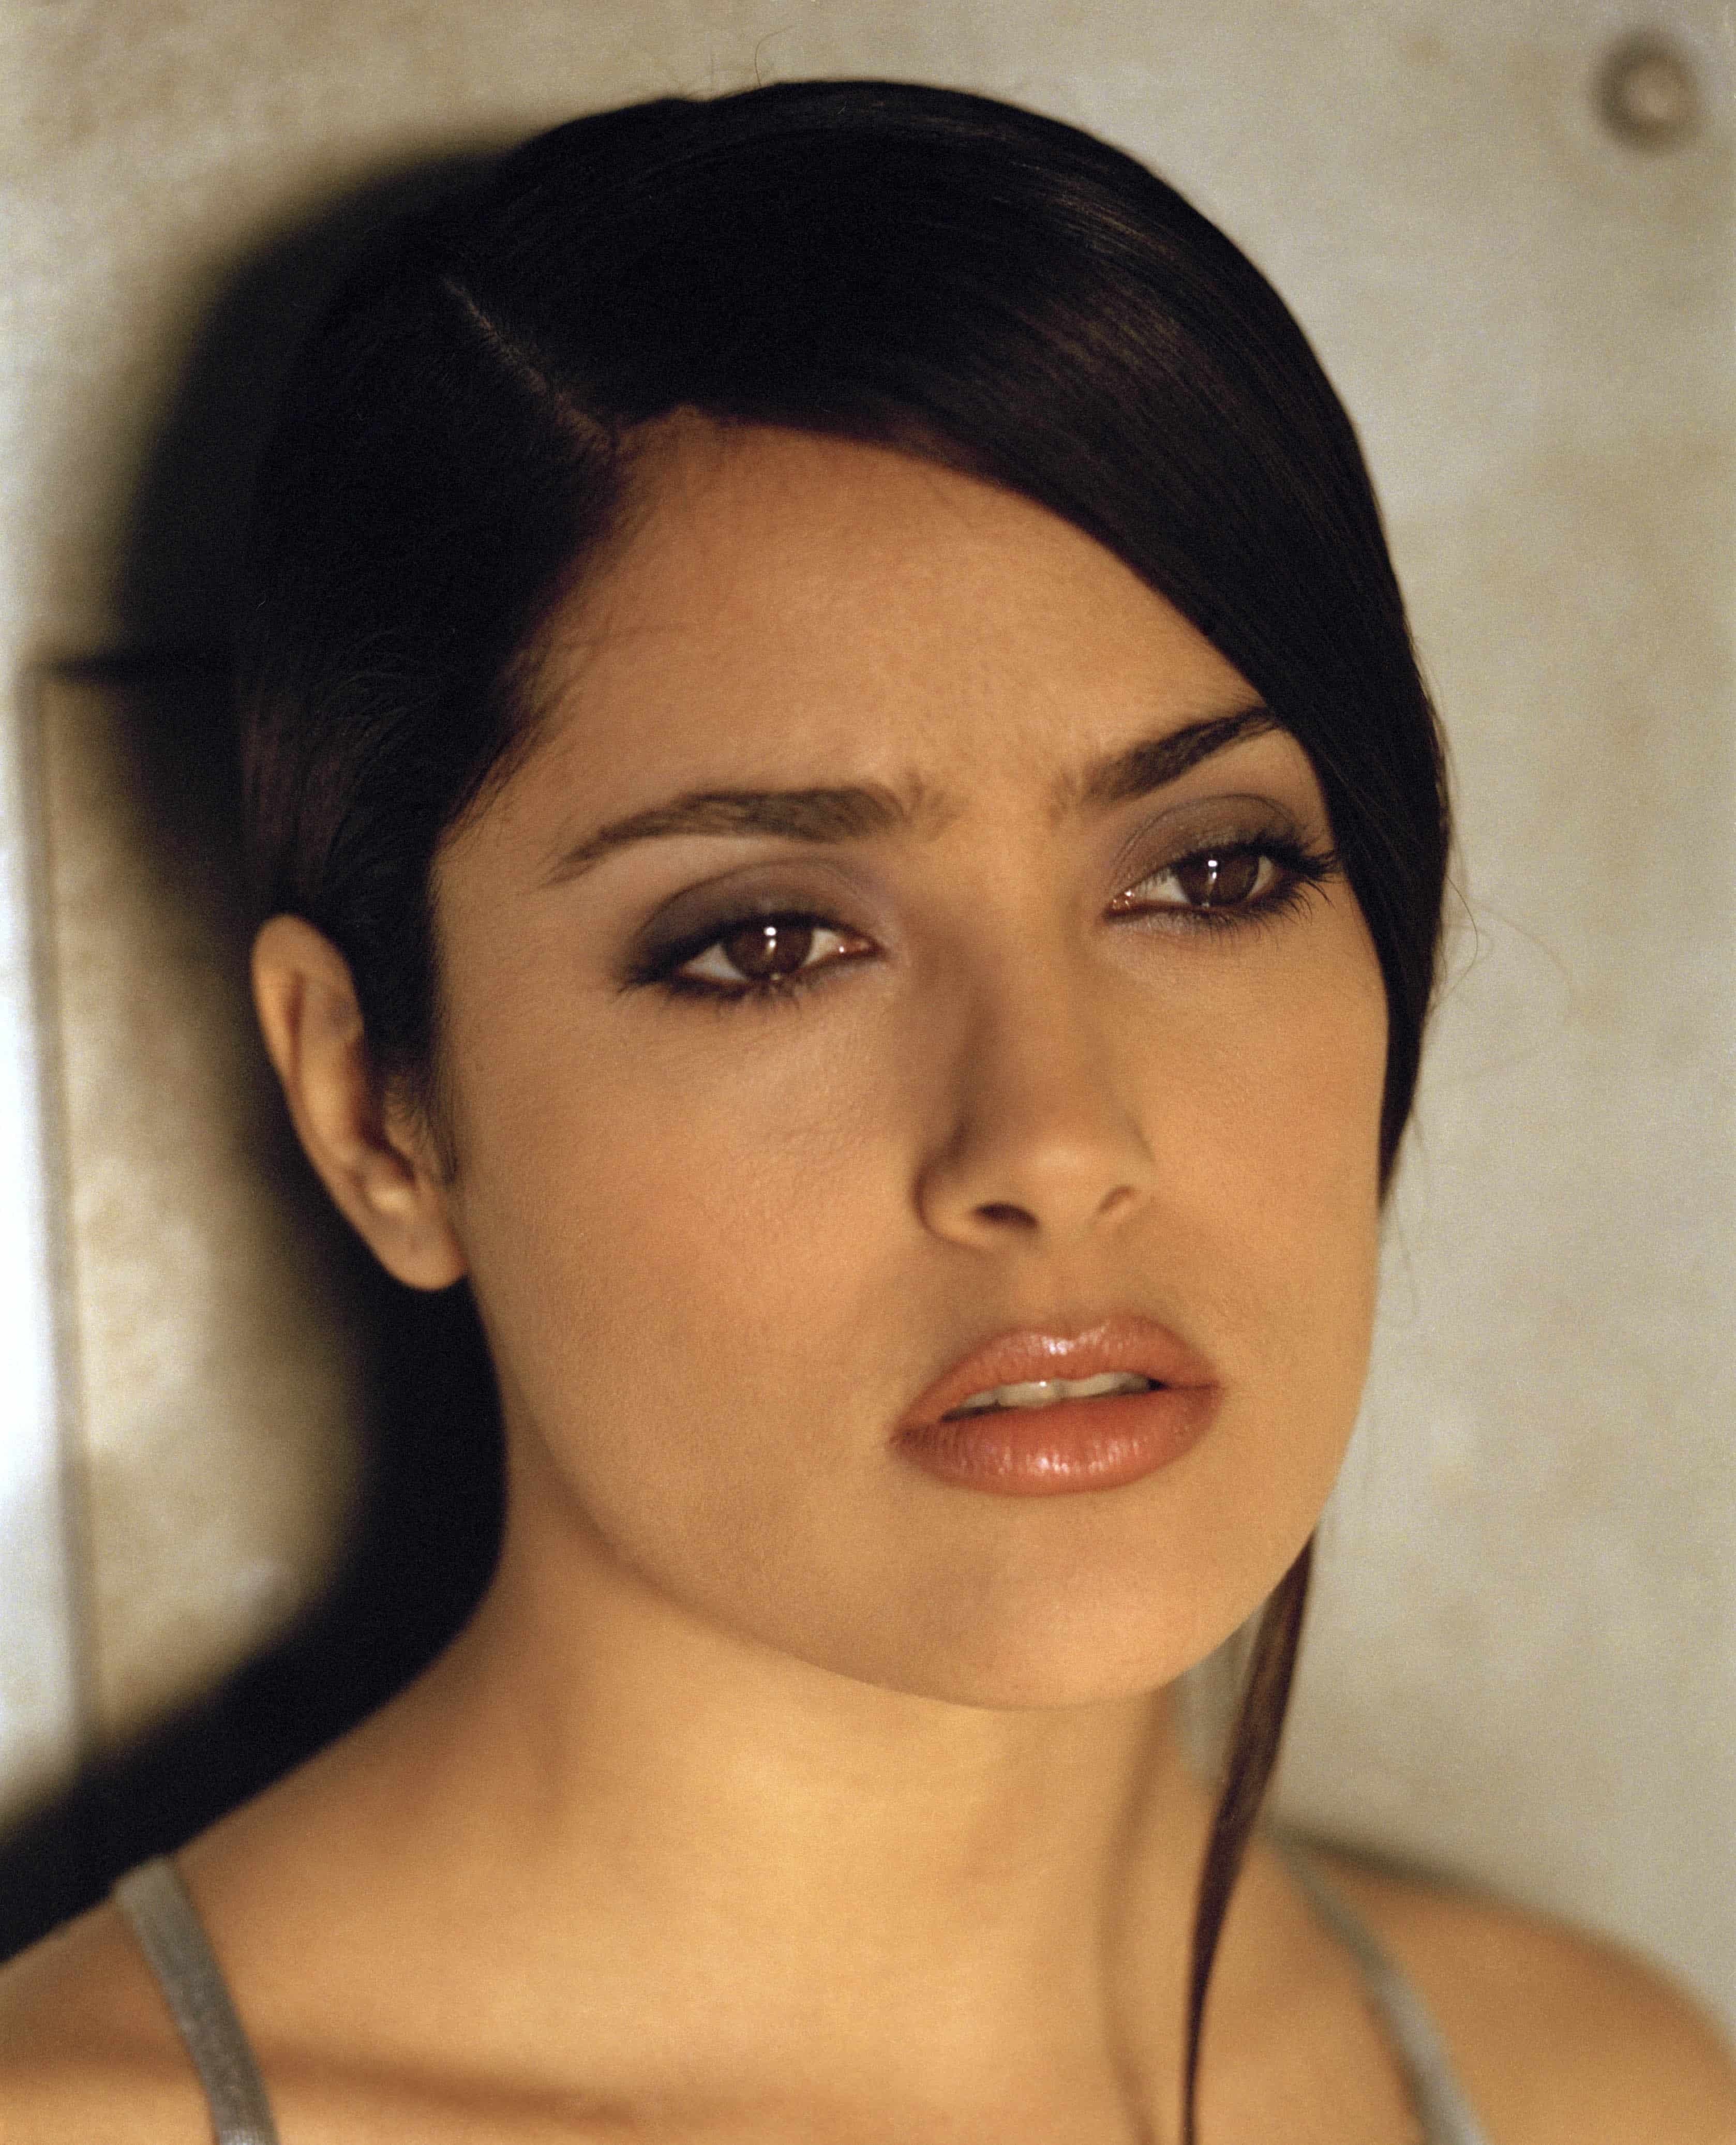 Salma Hayek Nude Pics & LEAKED Videos [FULL nsfw Collection]